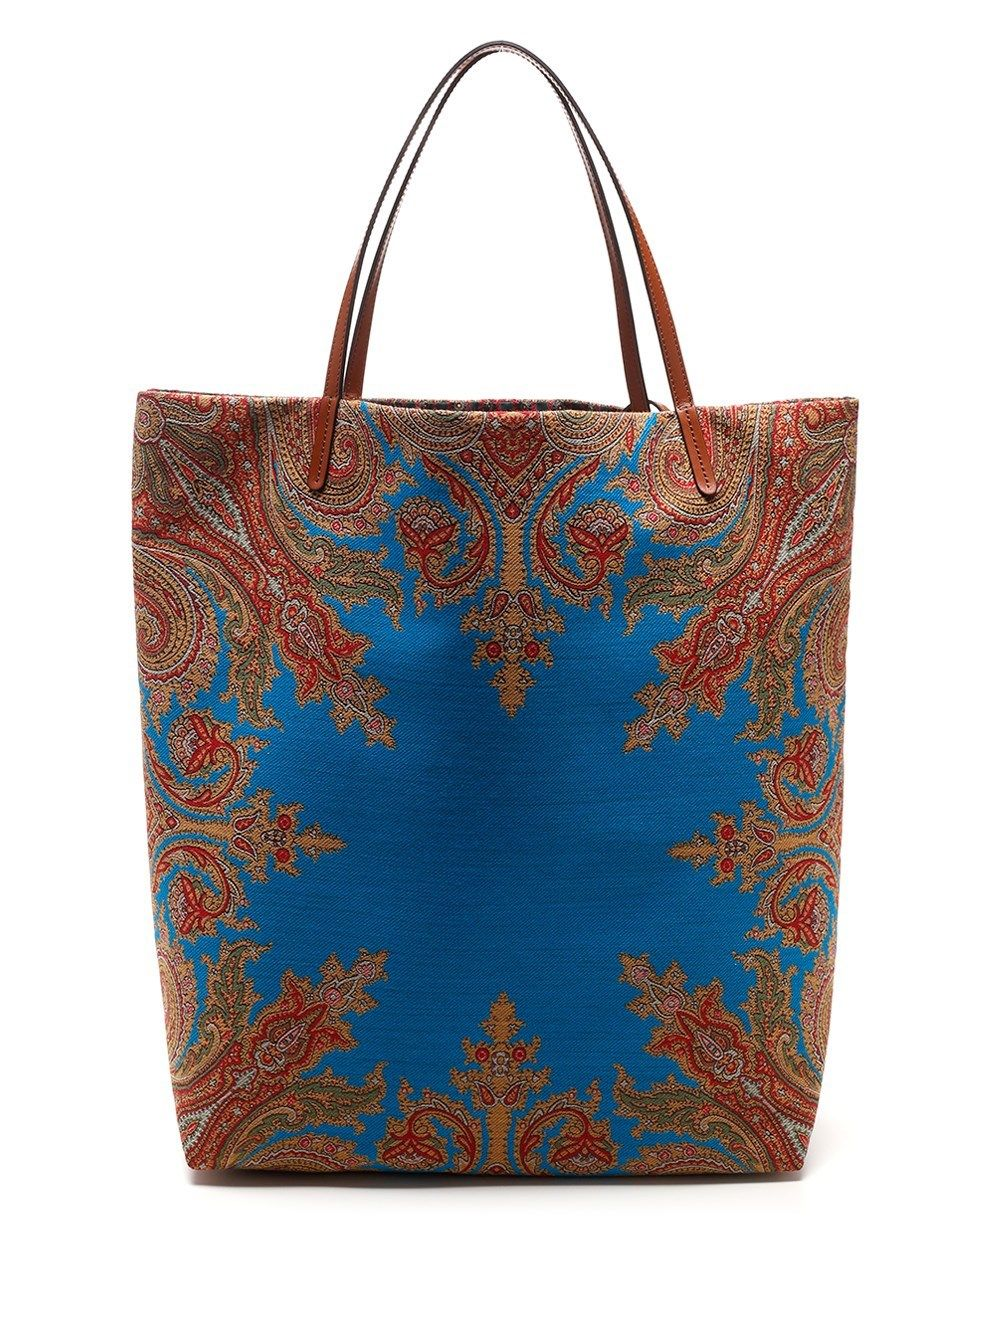 Etro ETRO WOMEN'S 1I4088829250 LIGHT BLUE OTHER MATERIALS TOTE